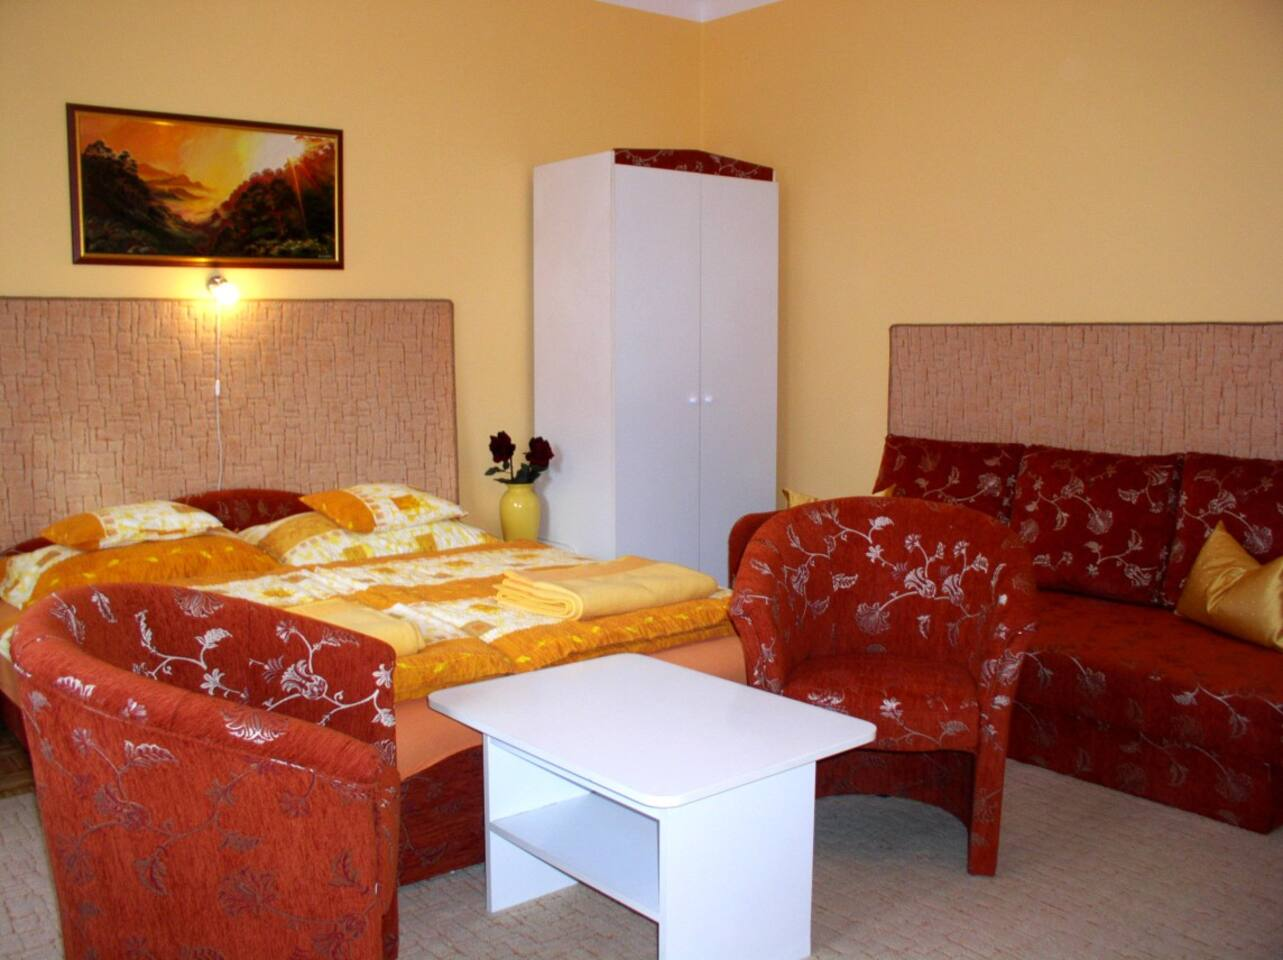 Private room with a mini kitchen, a double bed and a singel bed.